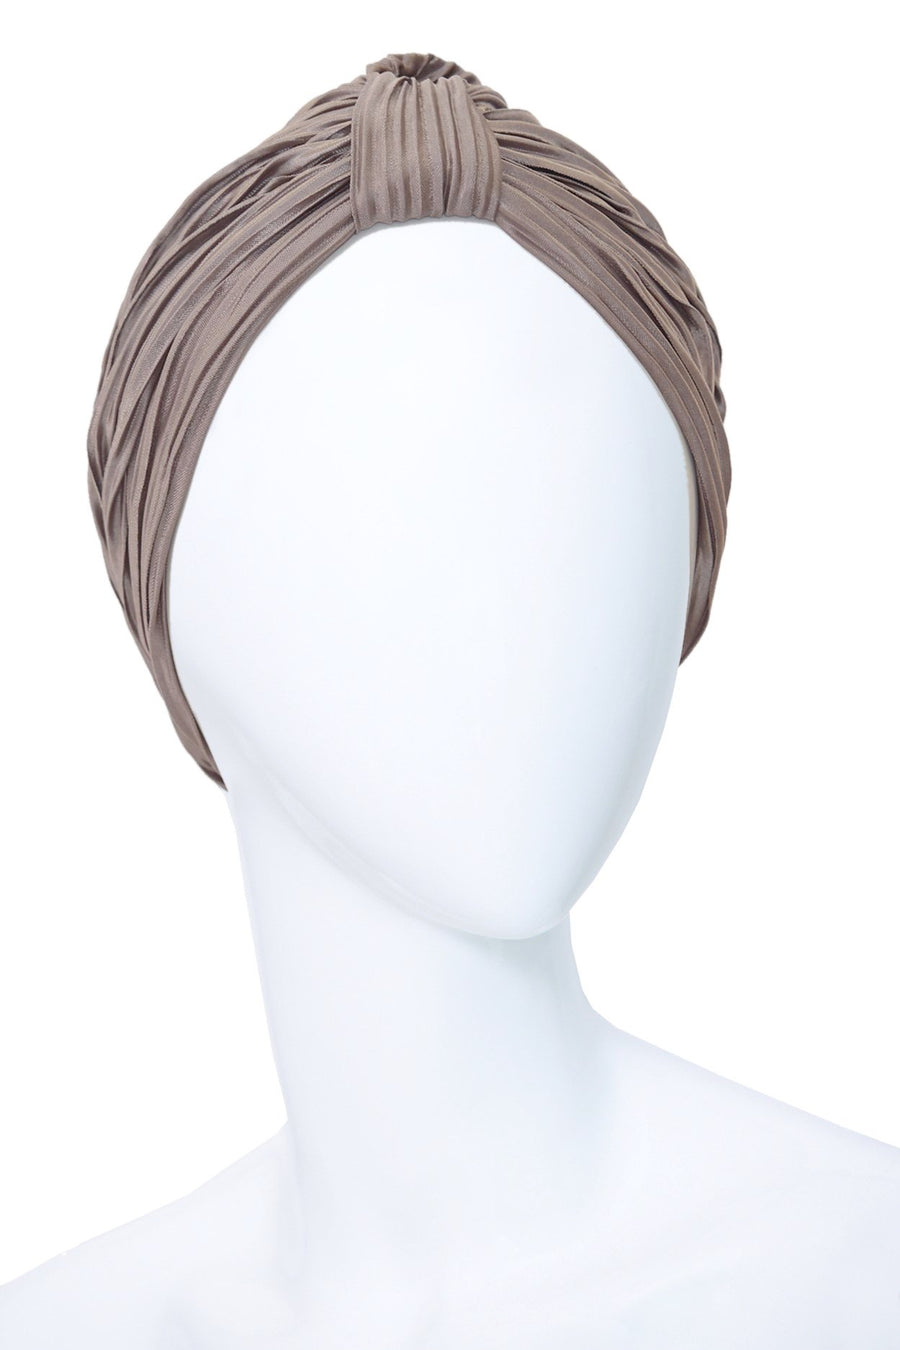 BRUNE Brown Turban made of Pleated Satin